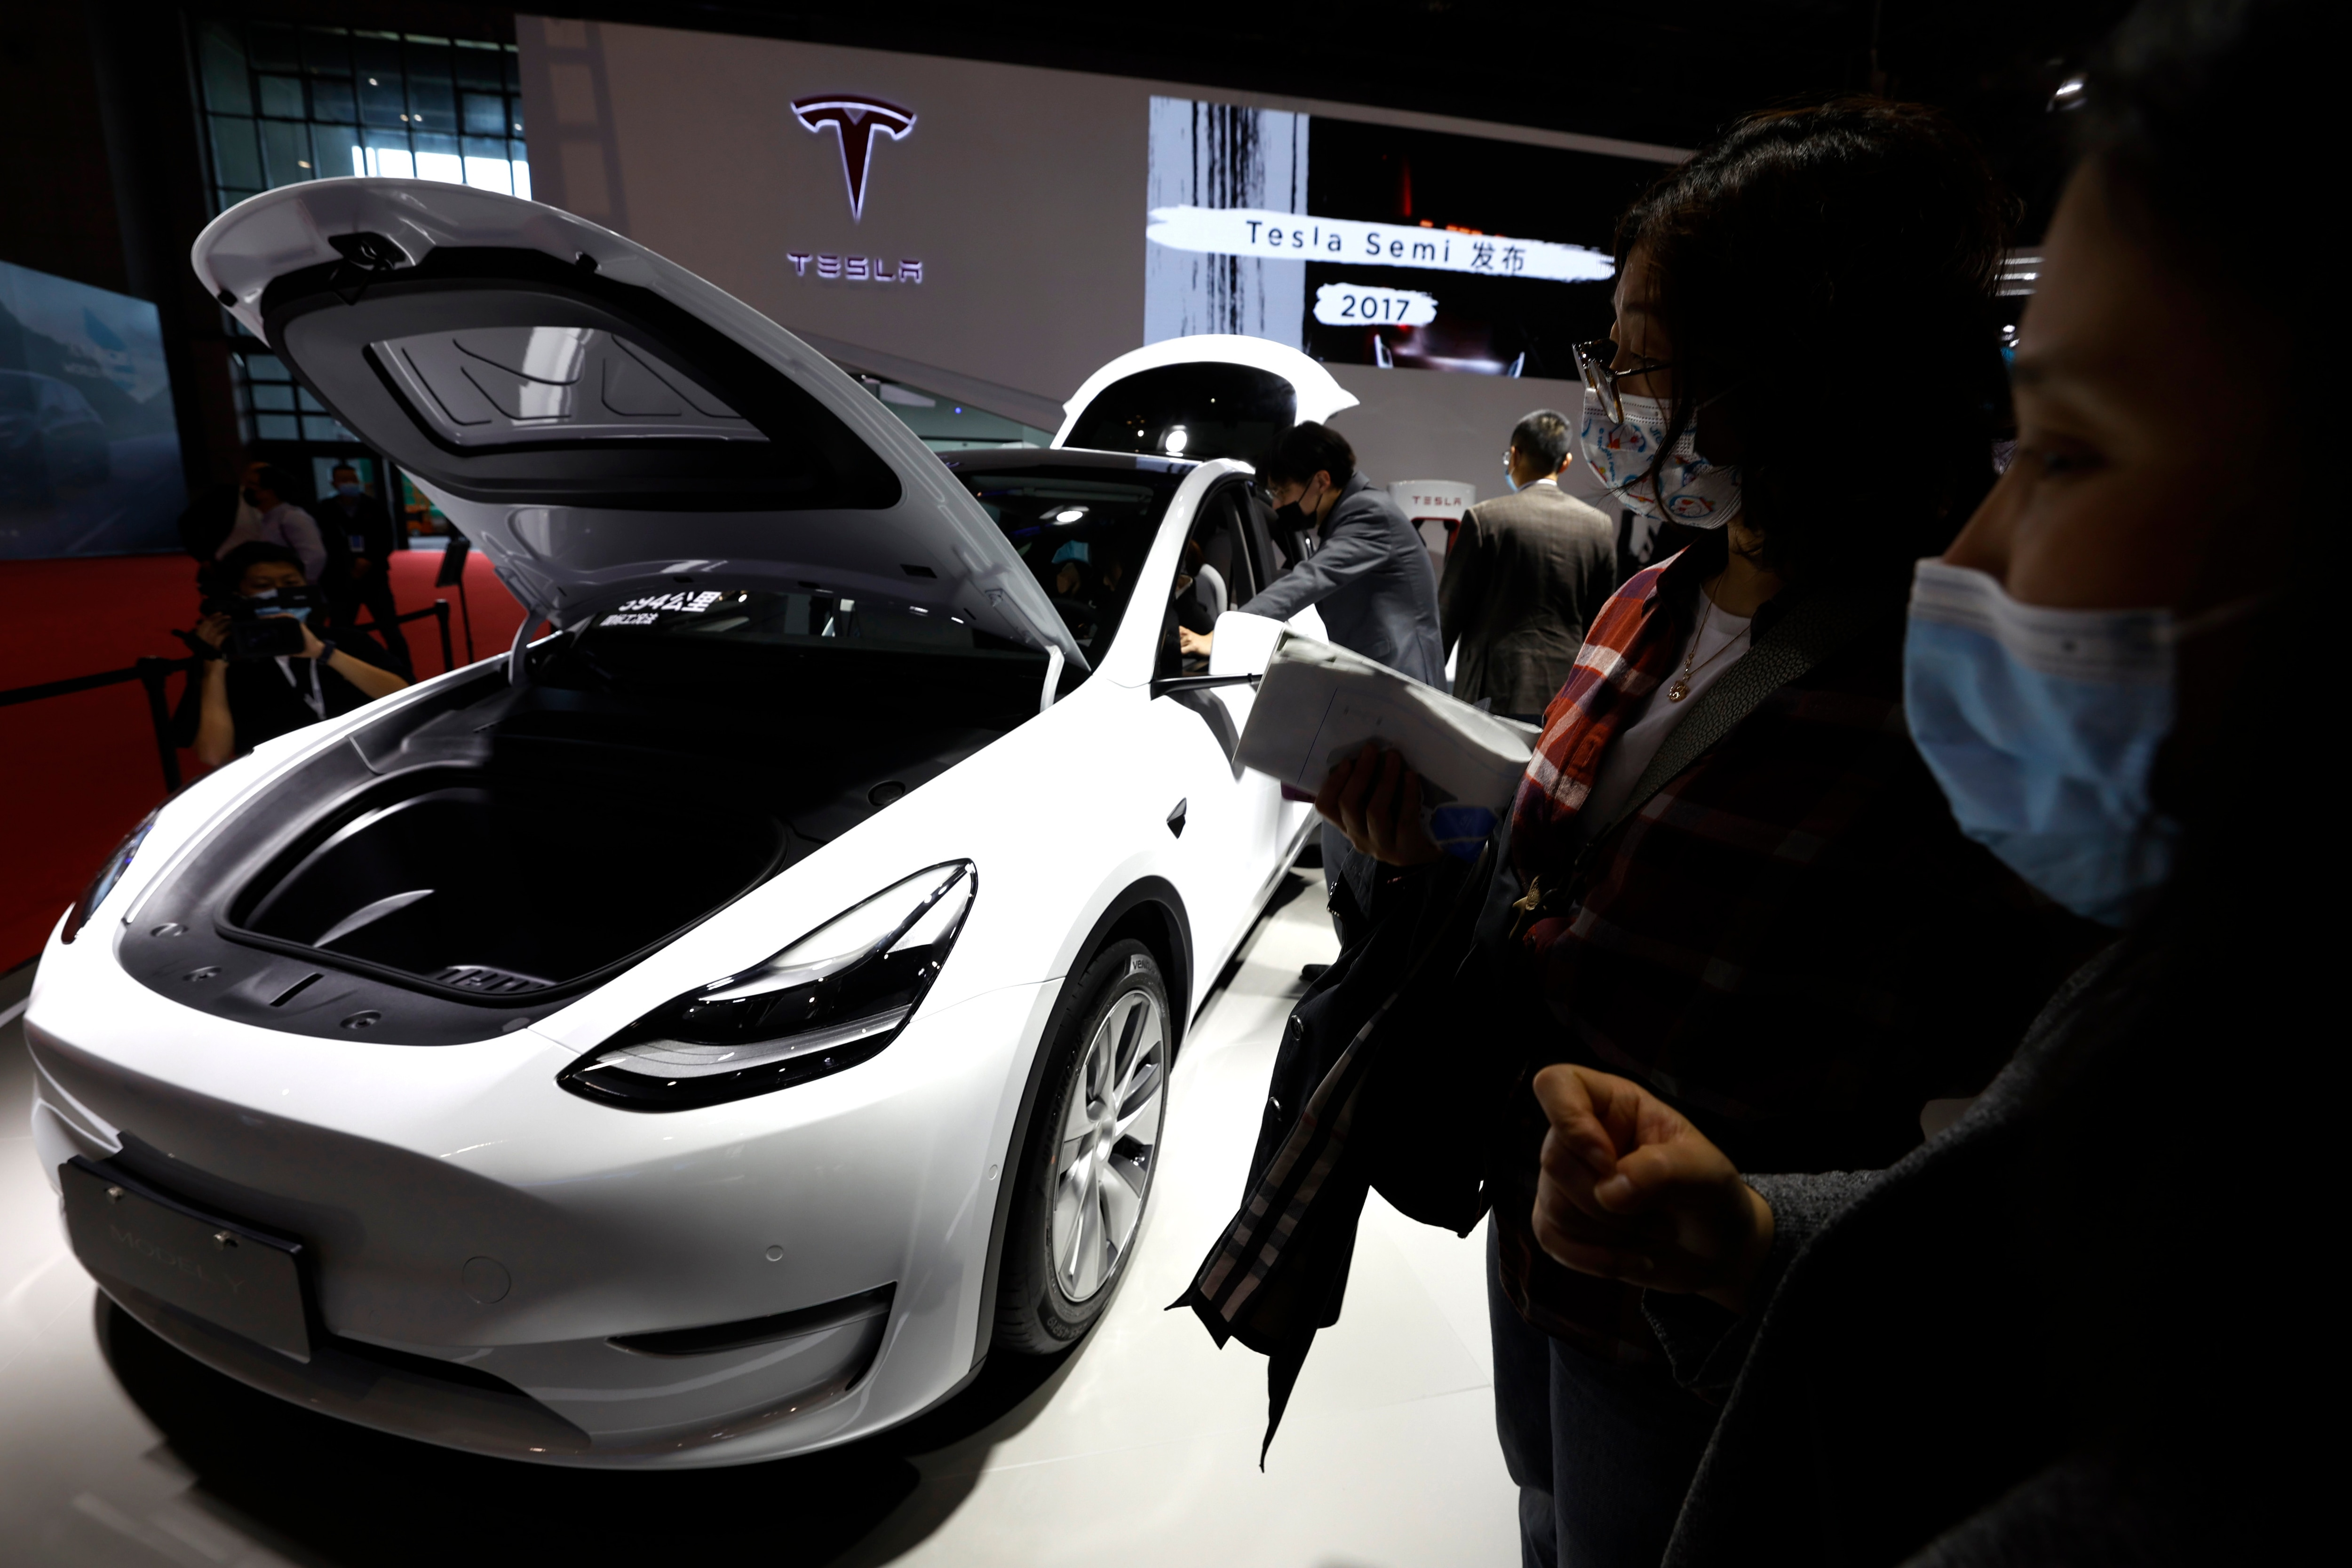 Visitors check out vehicles displayed at the Tesla booth during the Shanghai Auto Show. (AP)